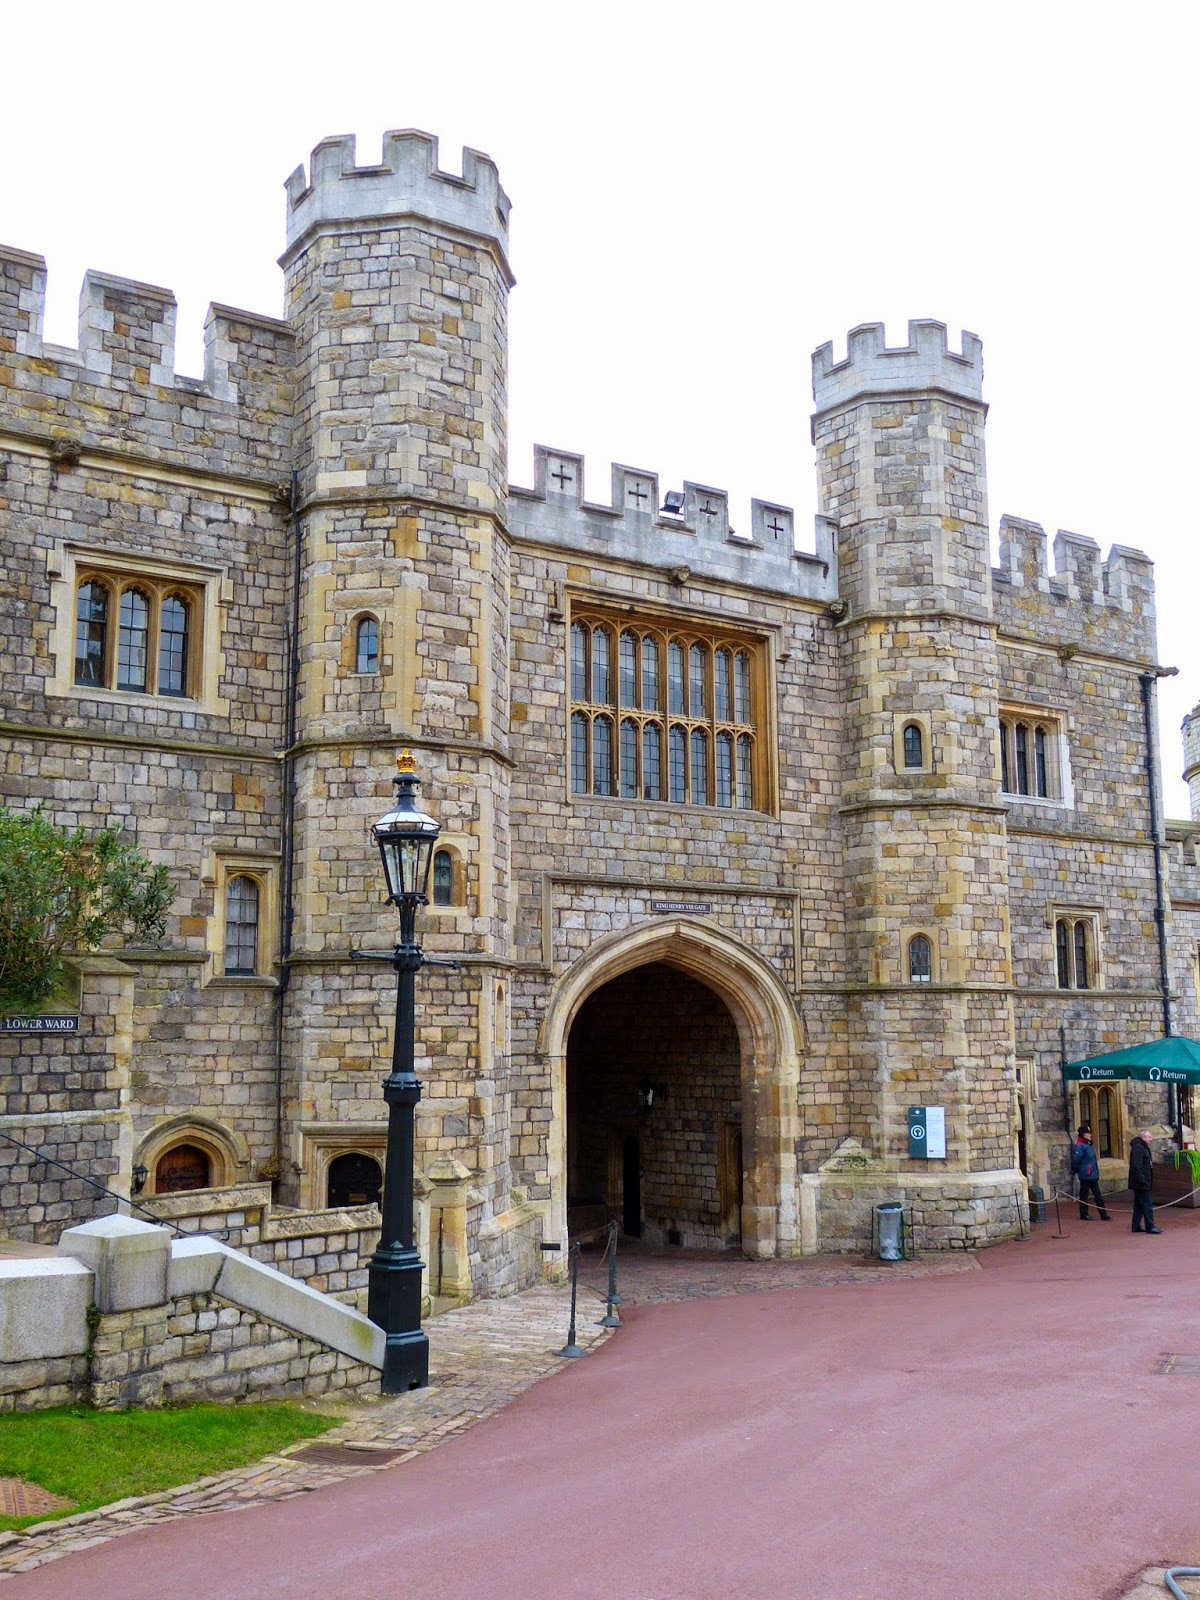 King Henry VIII's Gate, Windsor Castle